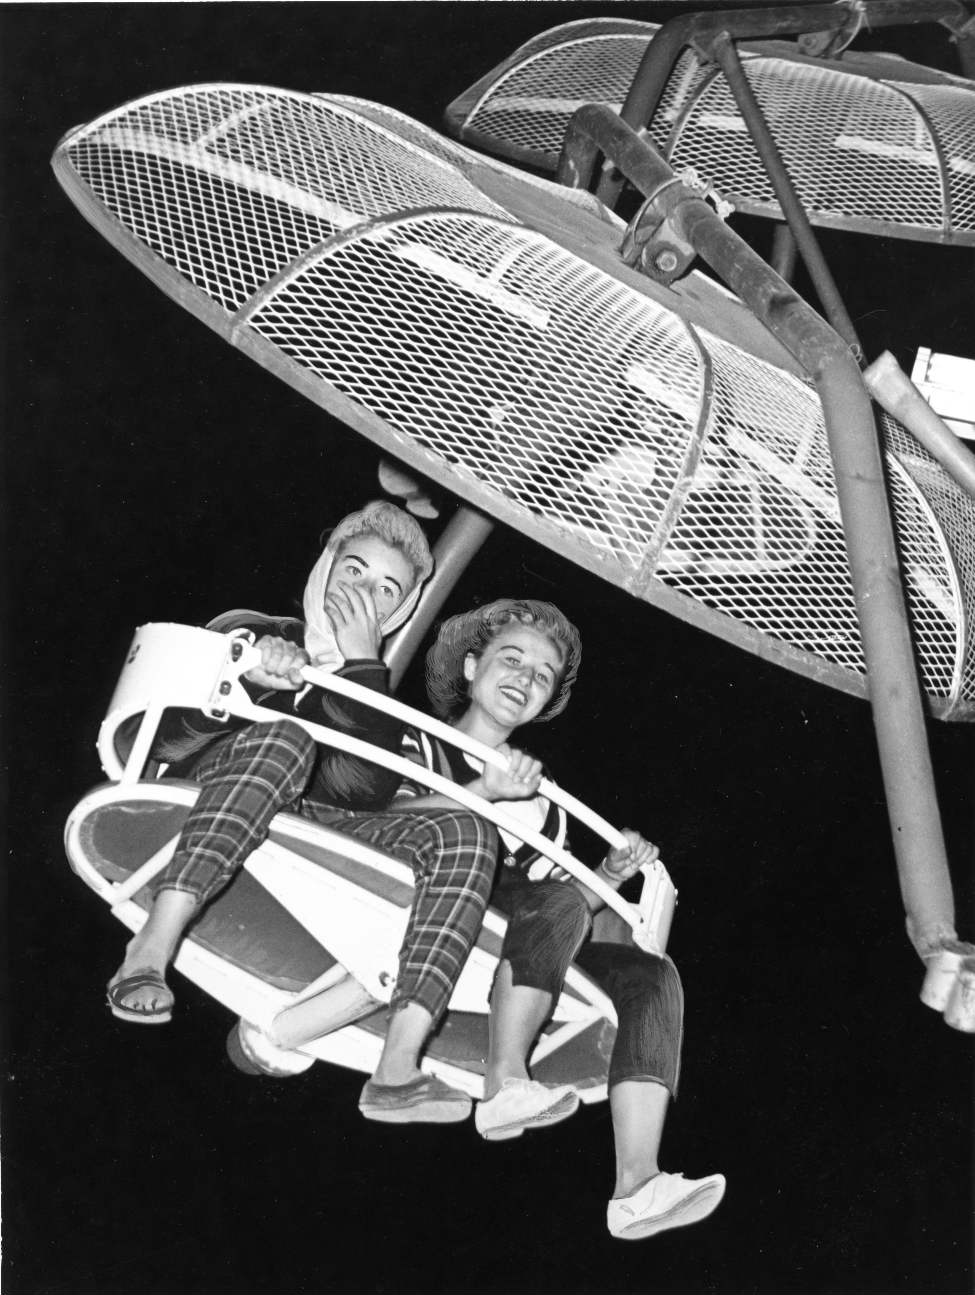 These two girls seem to have mixed opinions about the new Paratrooper ride on the midway at the Red River Exhibition, June 27, 1960.